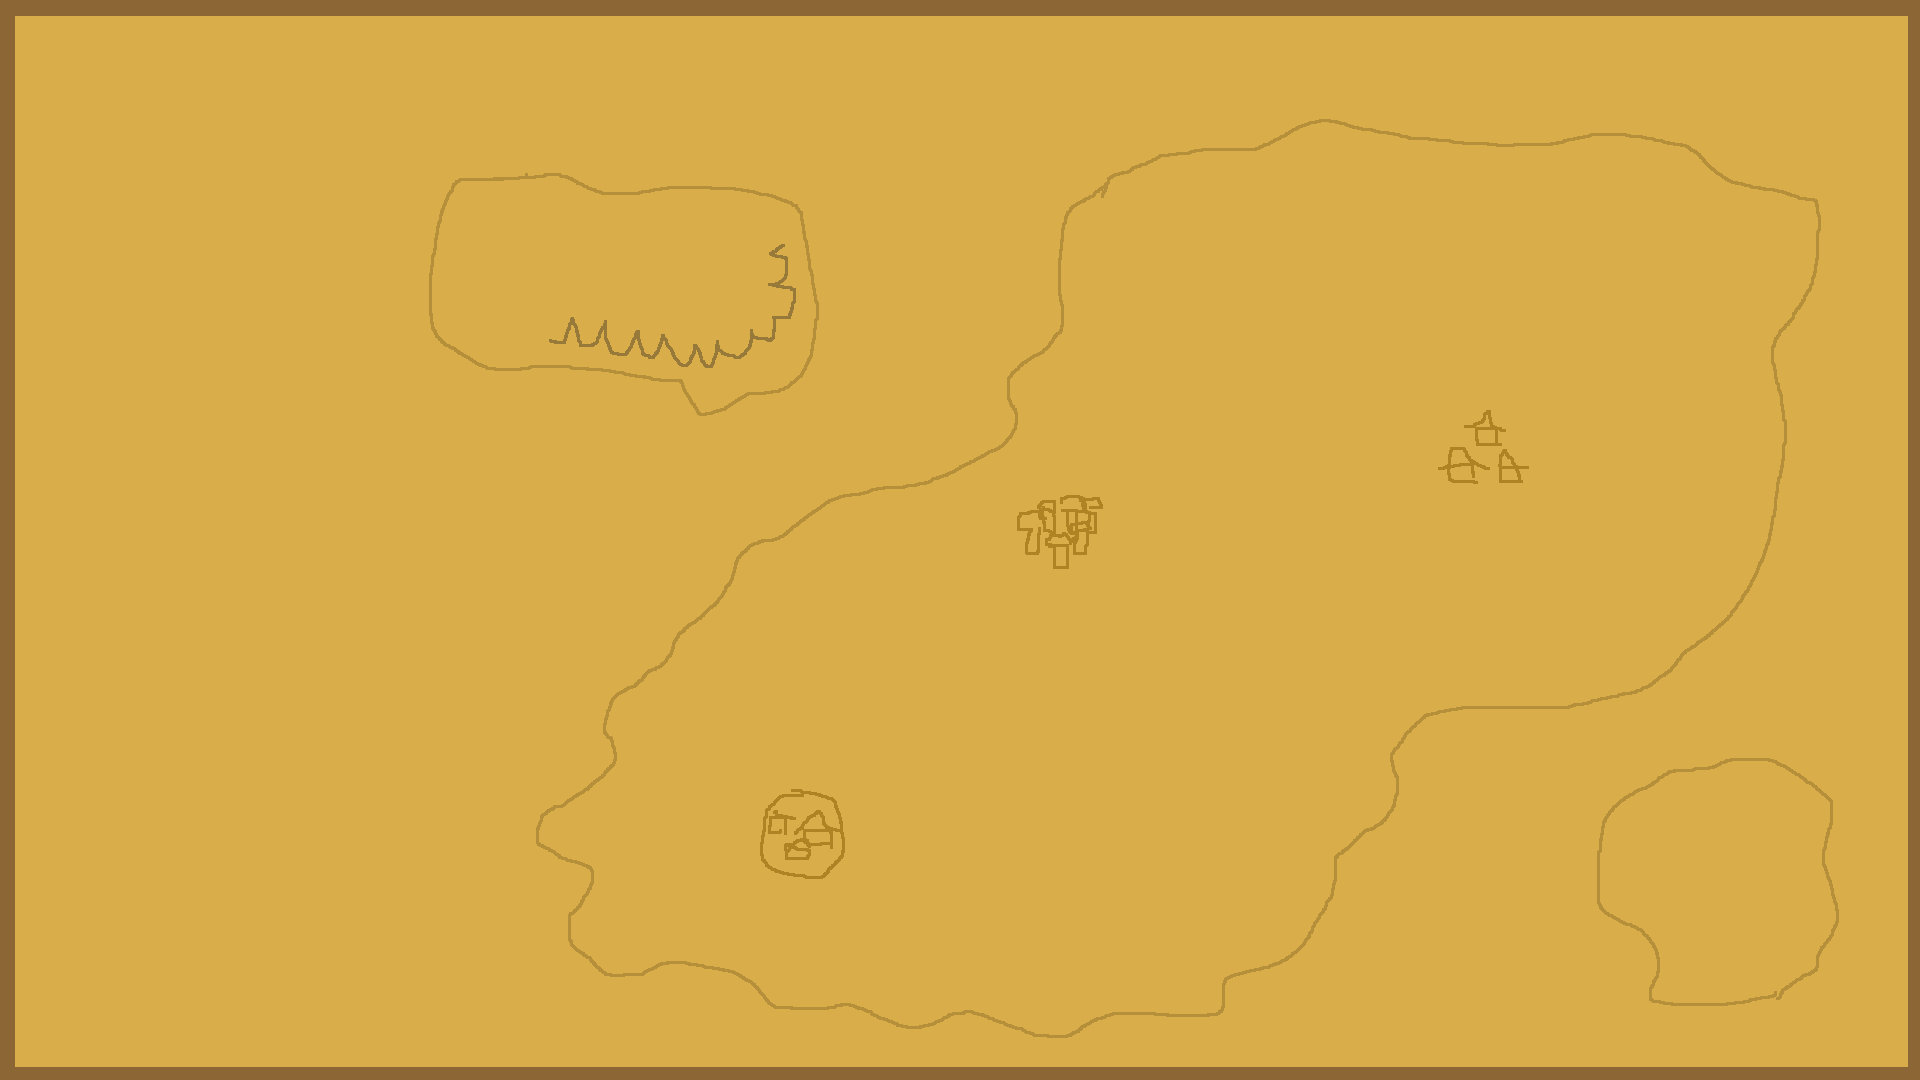 This is how the map looks like